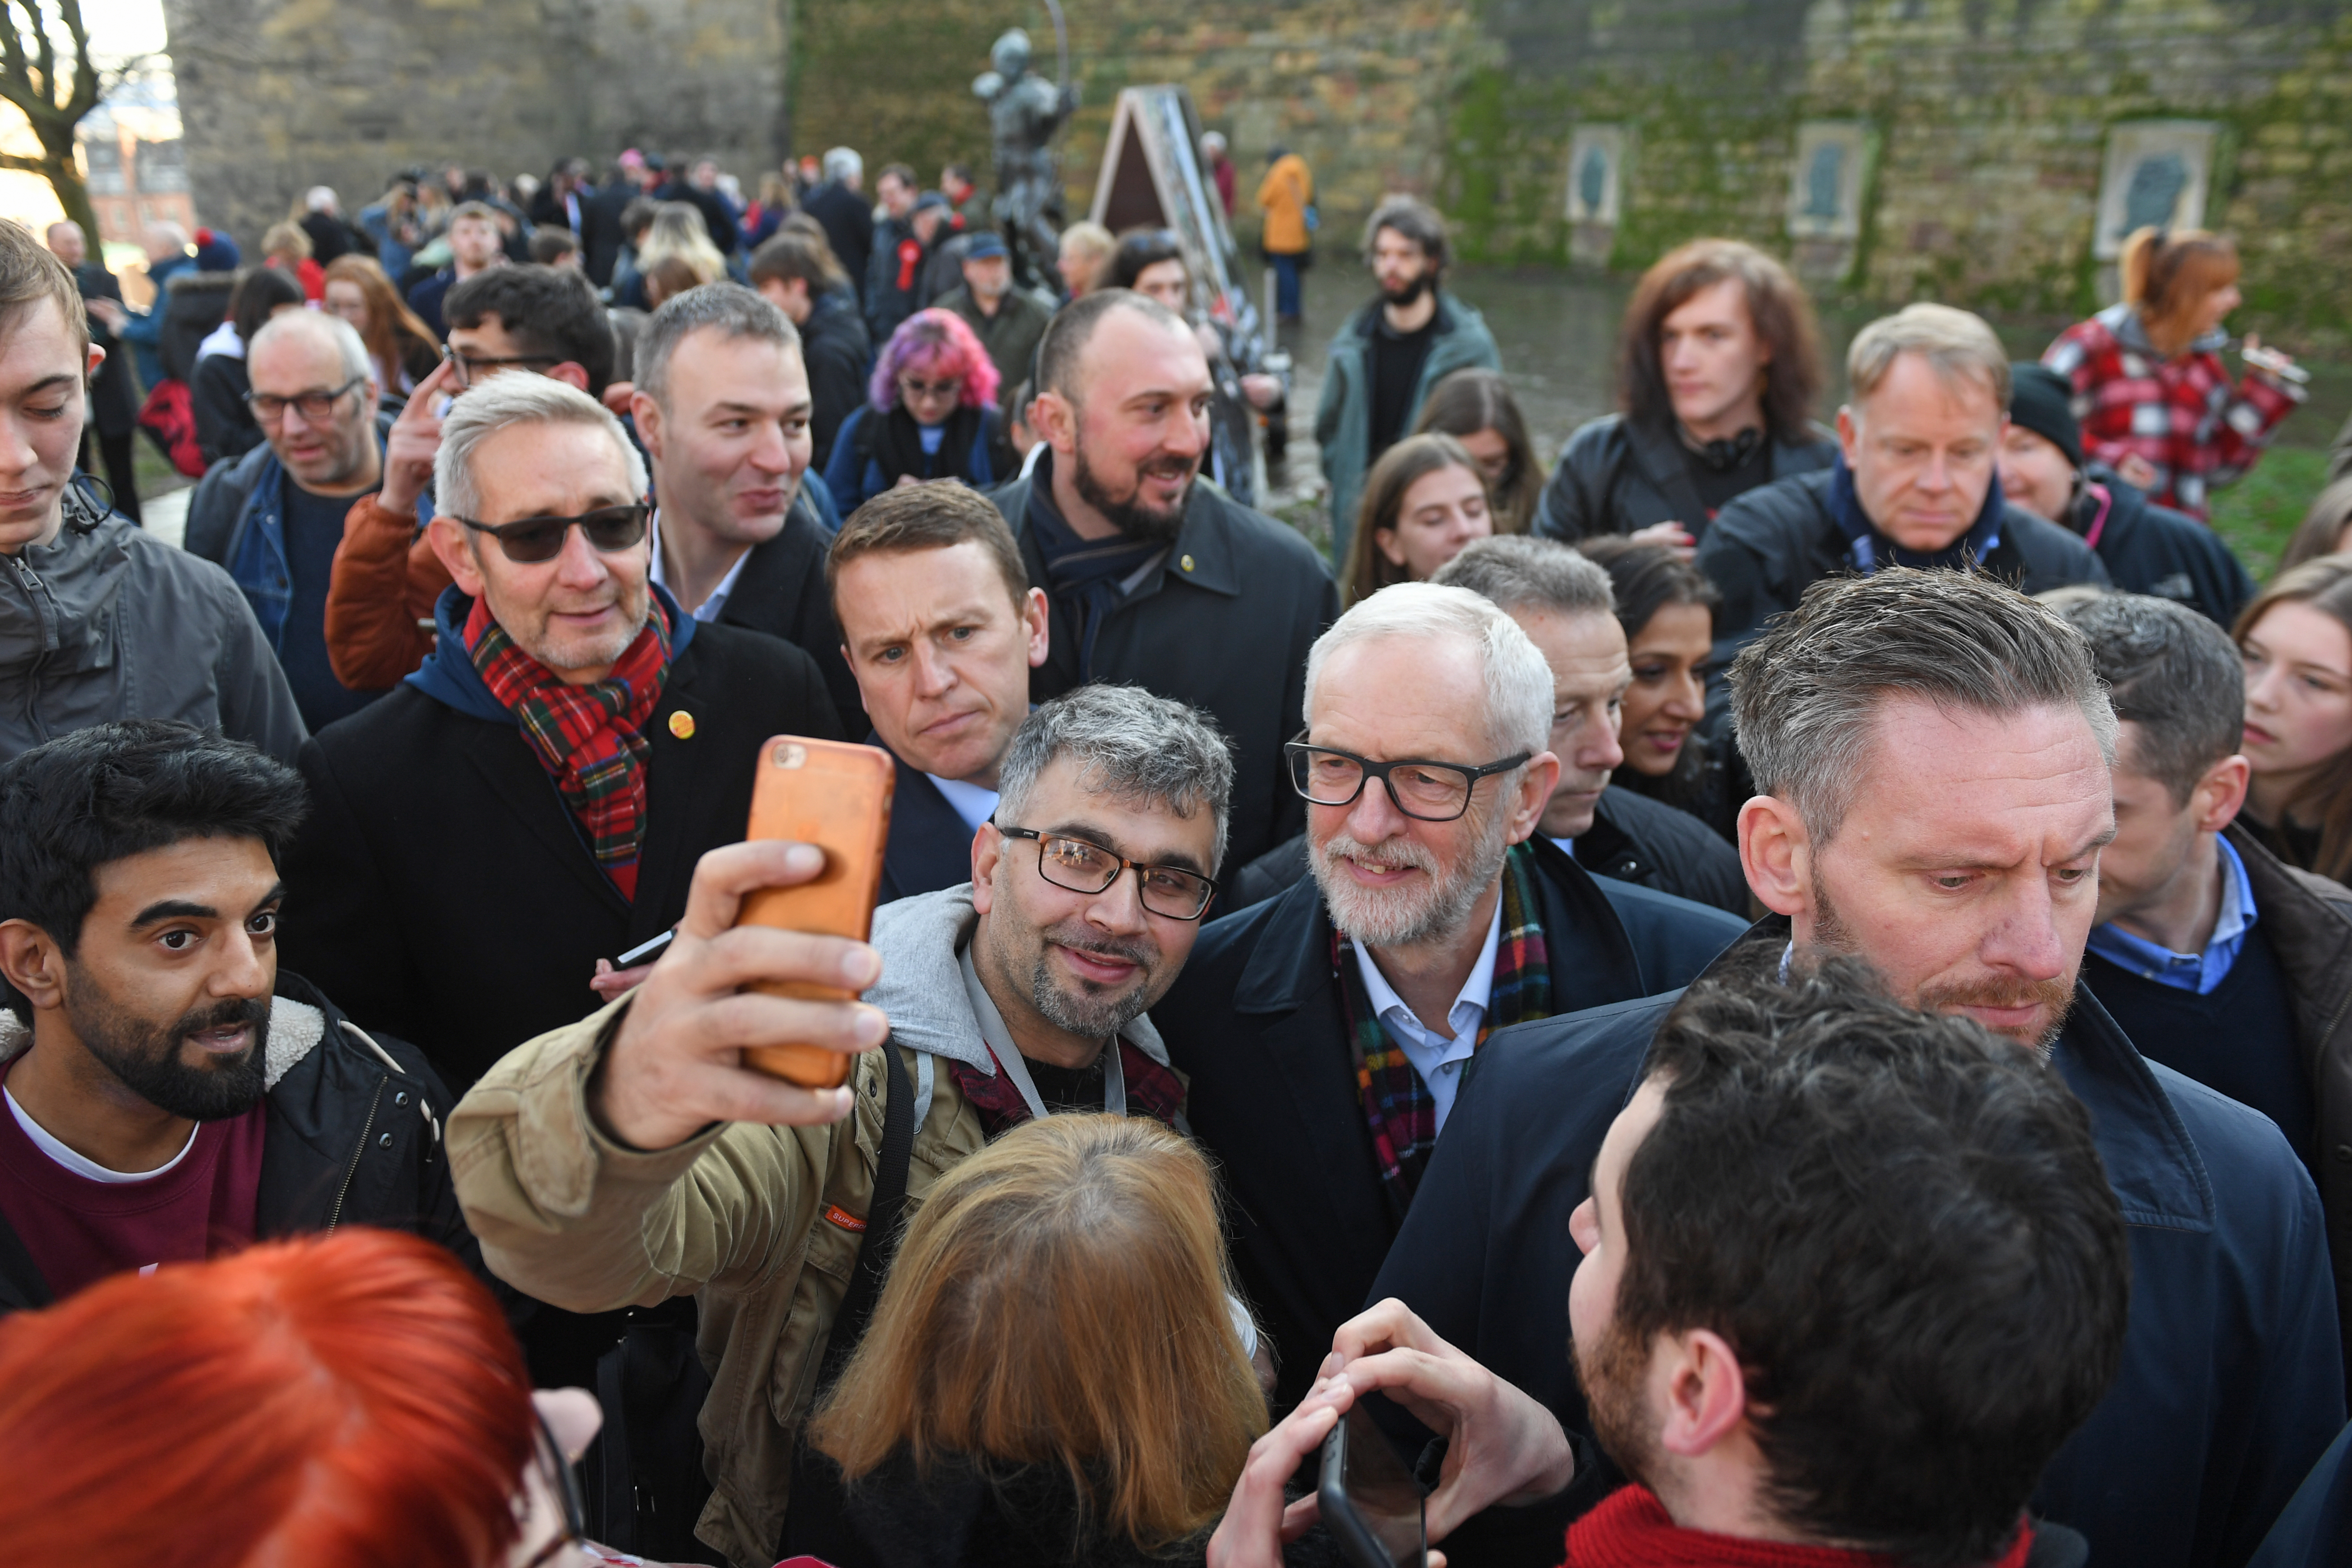 Labour leader Jeremy Corbyn has his photo taken with supporters in Nottingham, while on the General Election campaign trail.